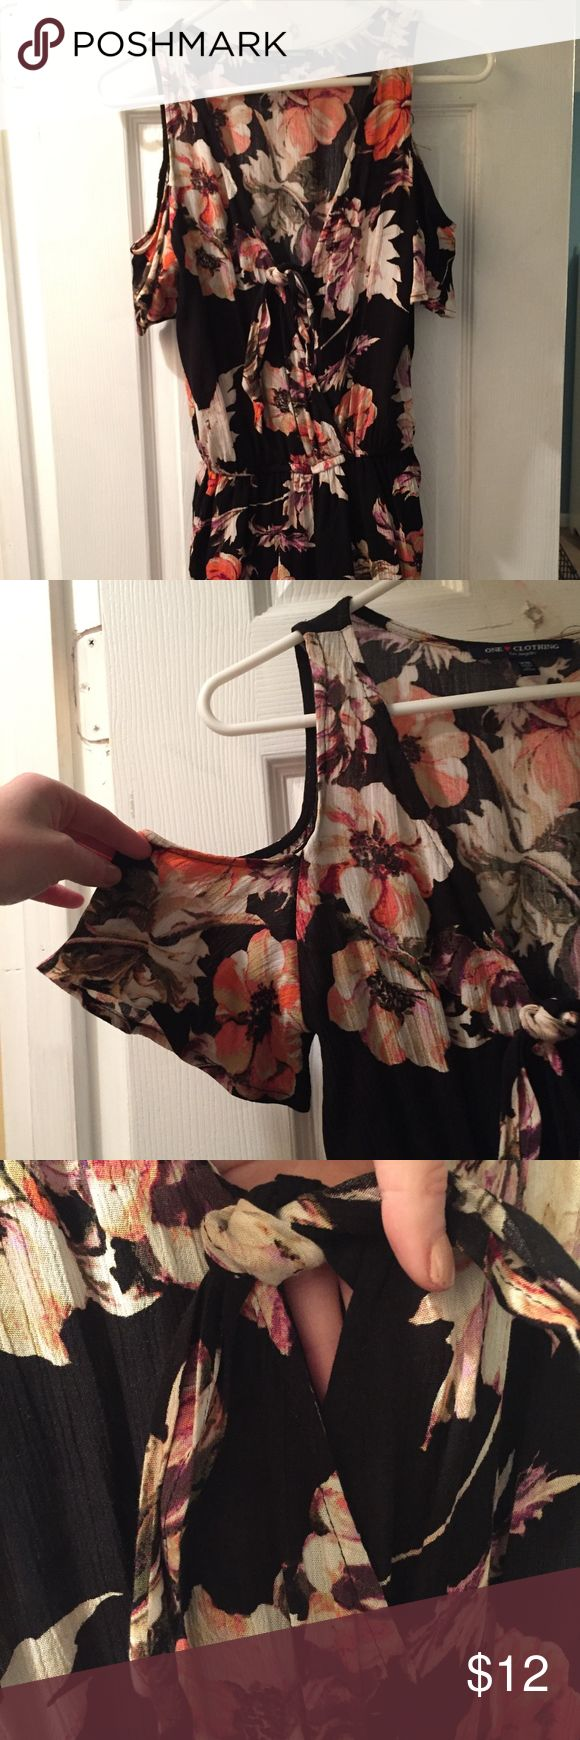 Black floral romper with front tie size XS Black romper (shorts) with off the shoulder sleeves.  The romper has only been tried on - never worn out of the house.   The front is low cut, with a tie closure one clothing Dresses Mini